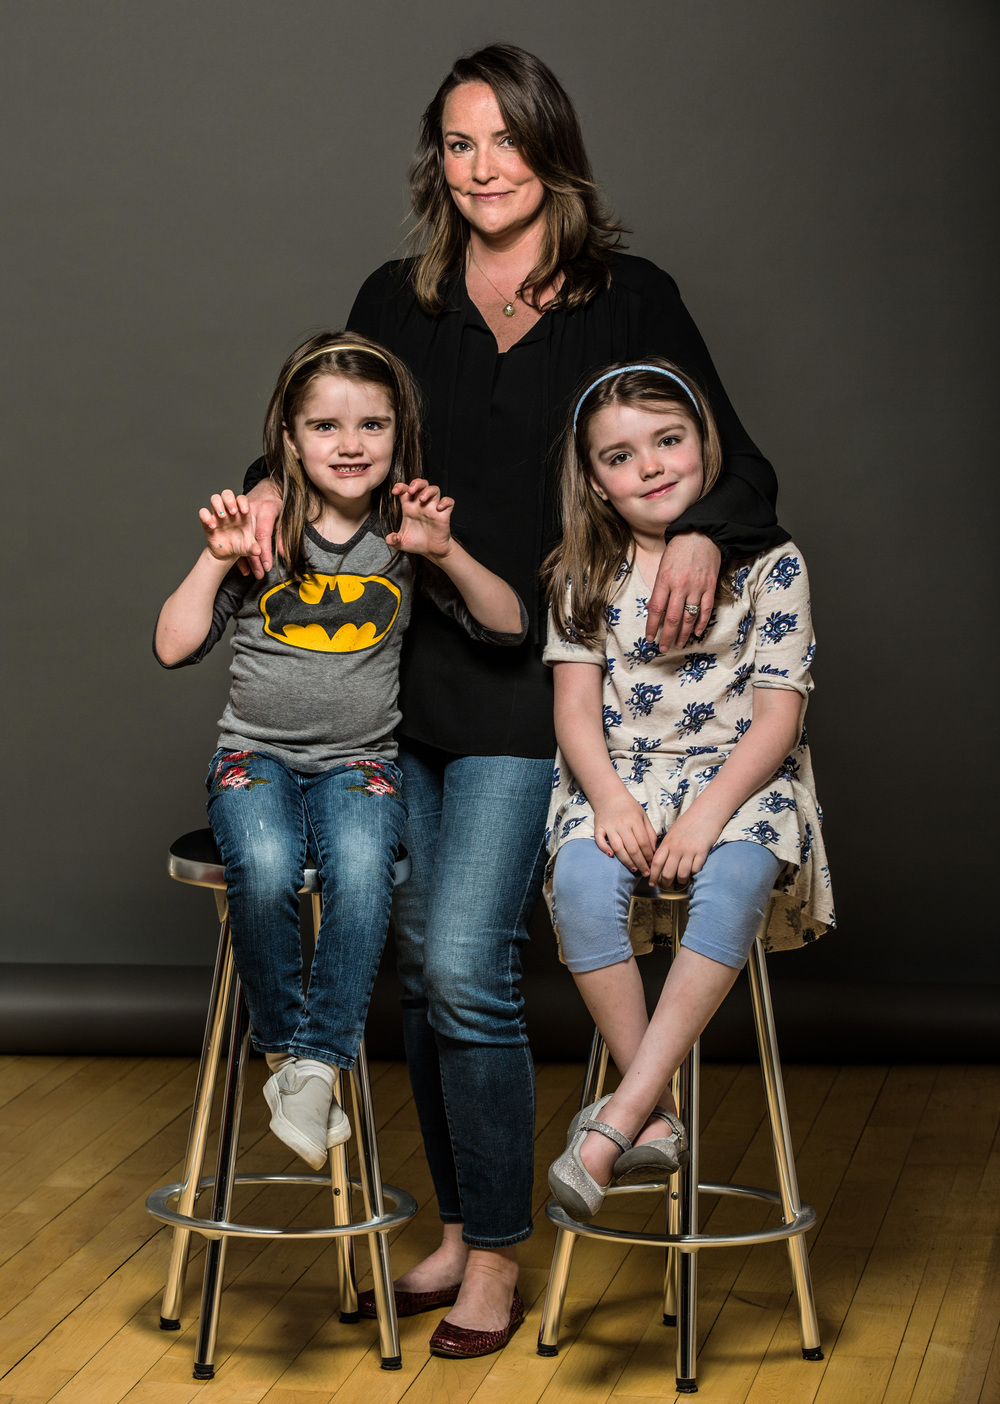 Beth Knight is a 20 year industry veteran, and a highly regarded and awarded brand strategist and insights curator. While she has worked on some of the most famous brands in the world, her most challenging (and rewarding) clients are her daughters, Izzy, who is six and Stella, who is five.